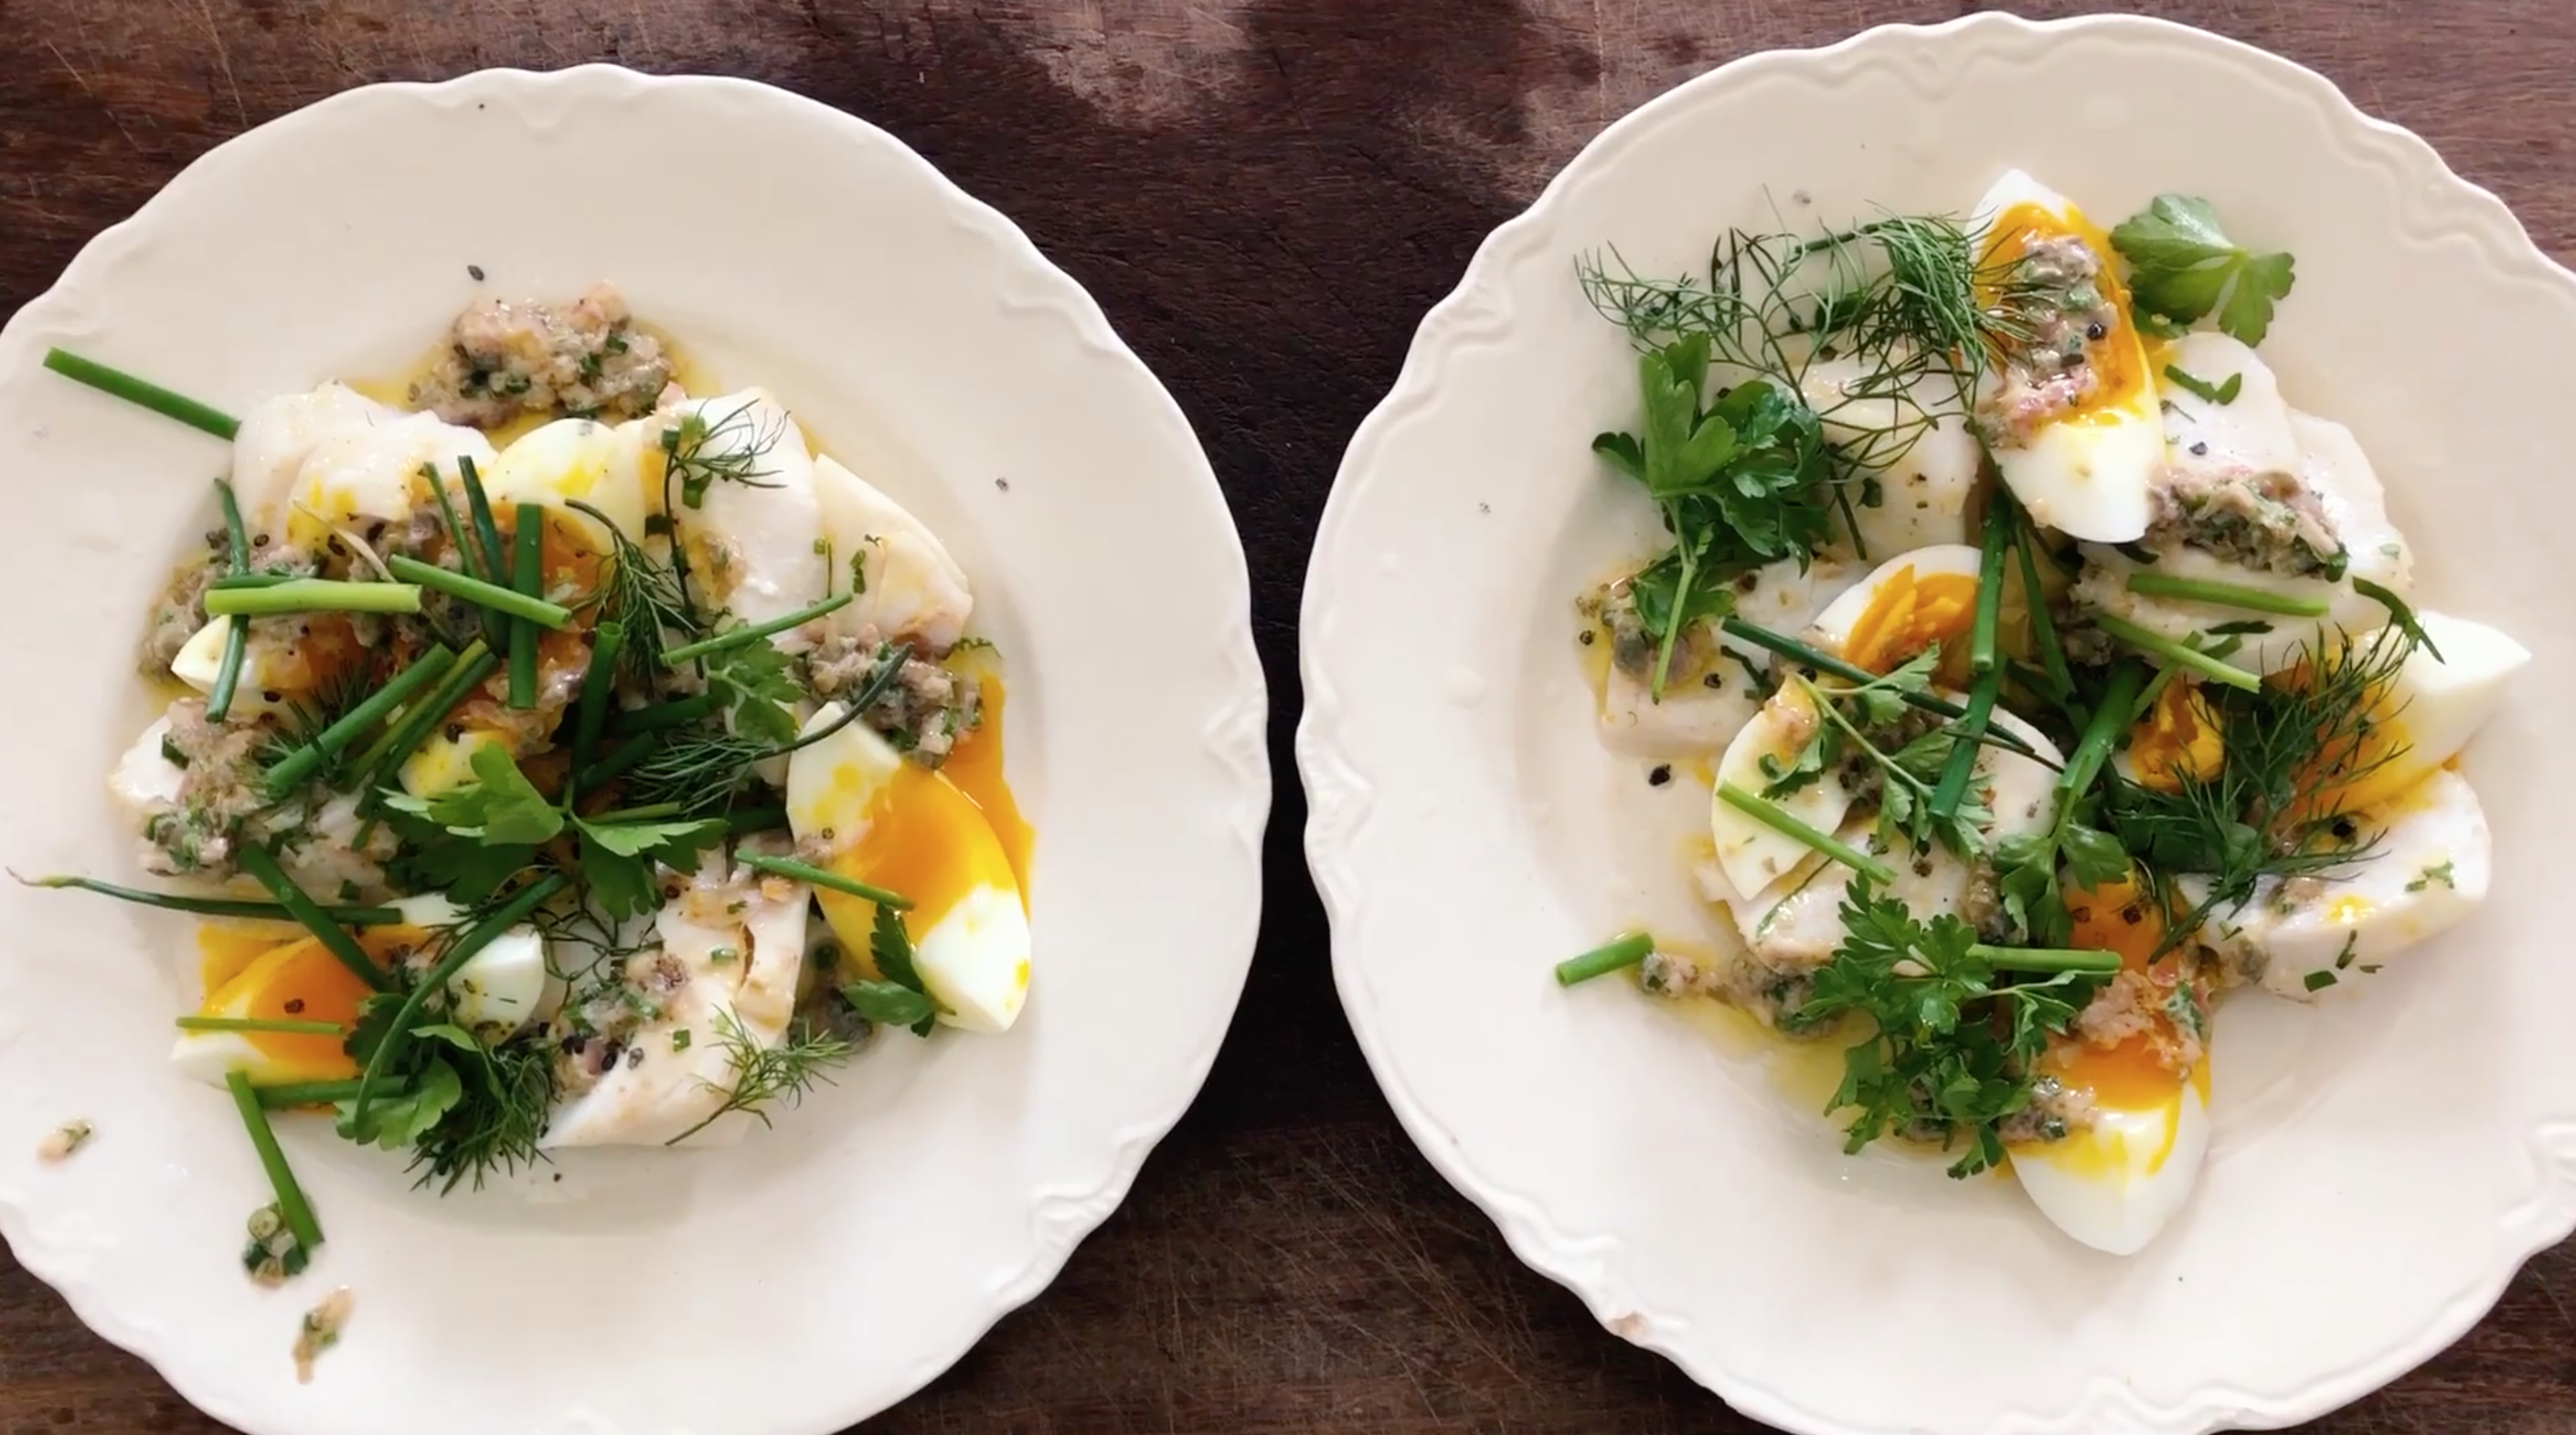 Warm Cod Salad with Tarragon Sauce and Boiled Eggs